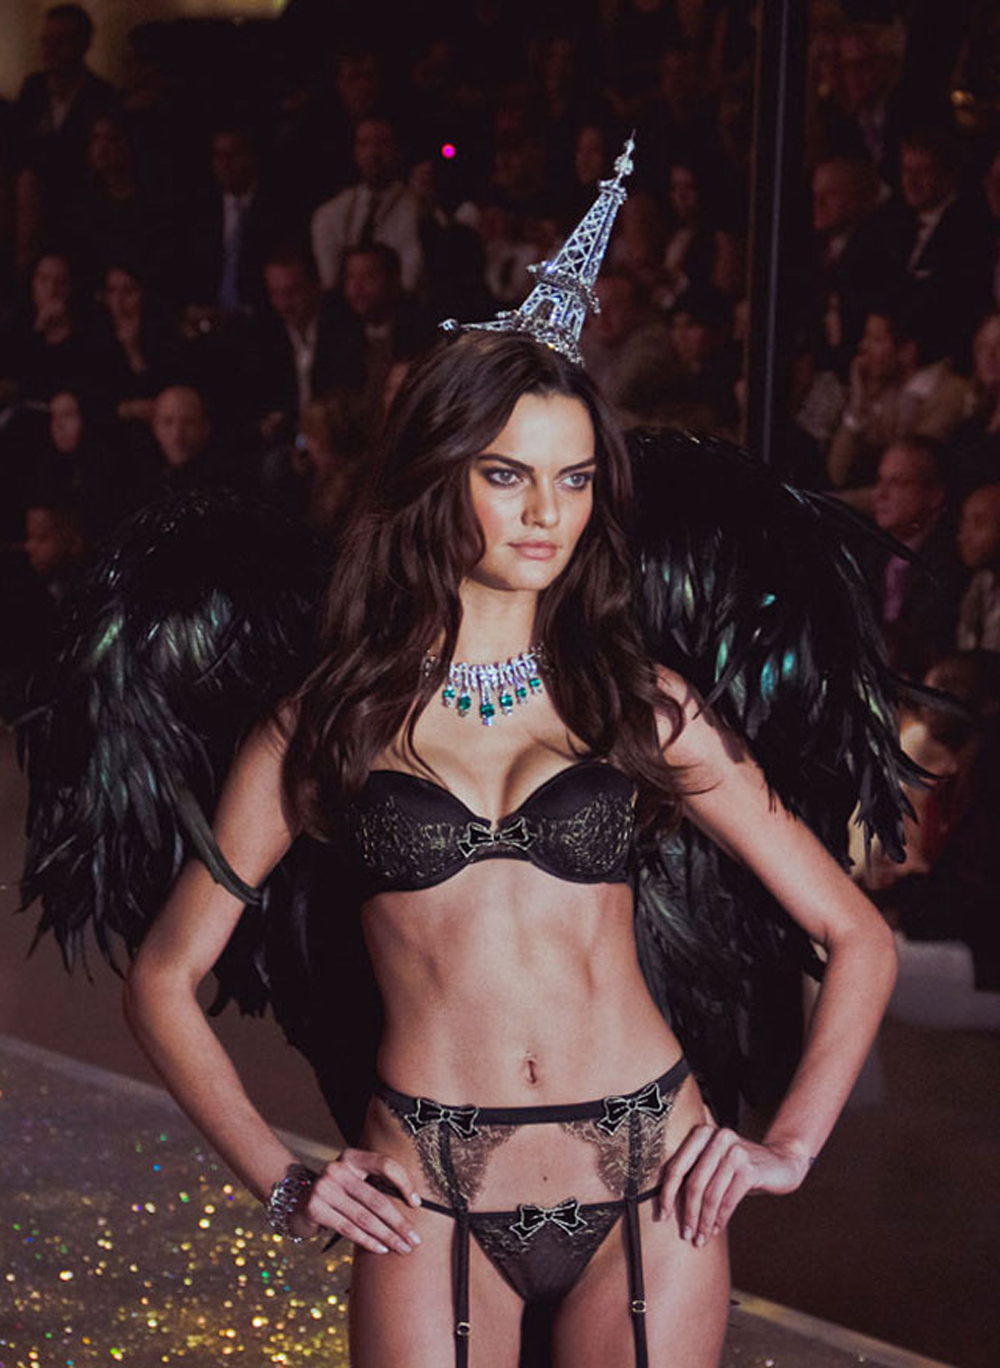 Victoria's Secret Fashion Show 2013-1: Corset Of A $6.5 Billion ...